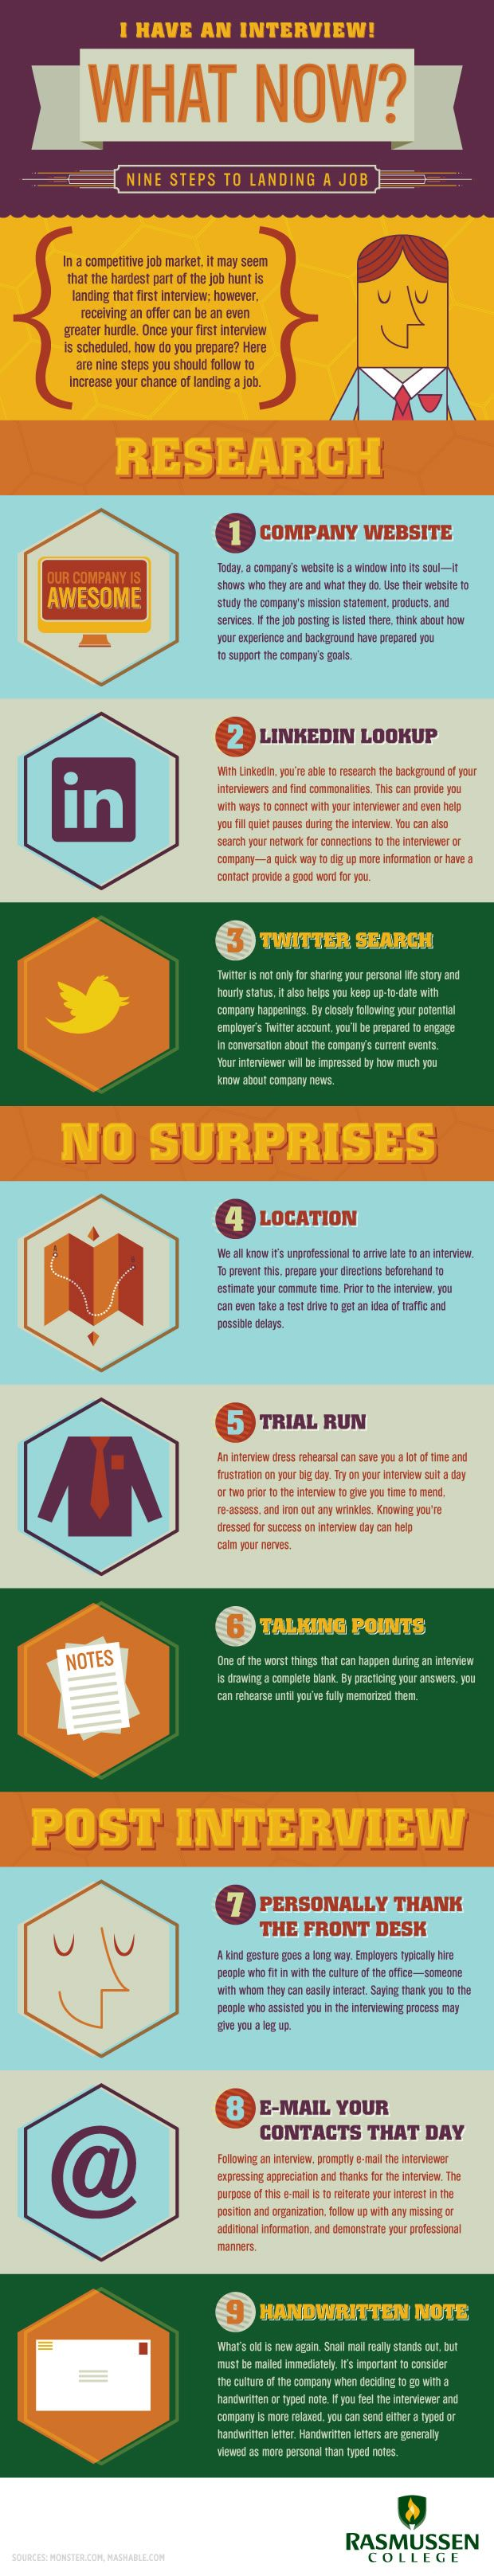 17 best images about job interview infographics i have an interview now what great tips add glassdoor what others say about working at the company questions favorites what would you change about